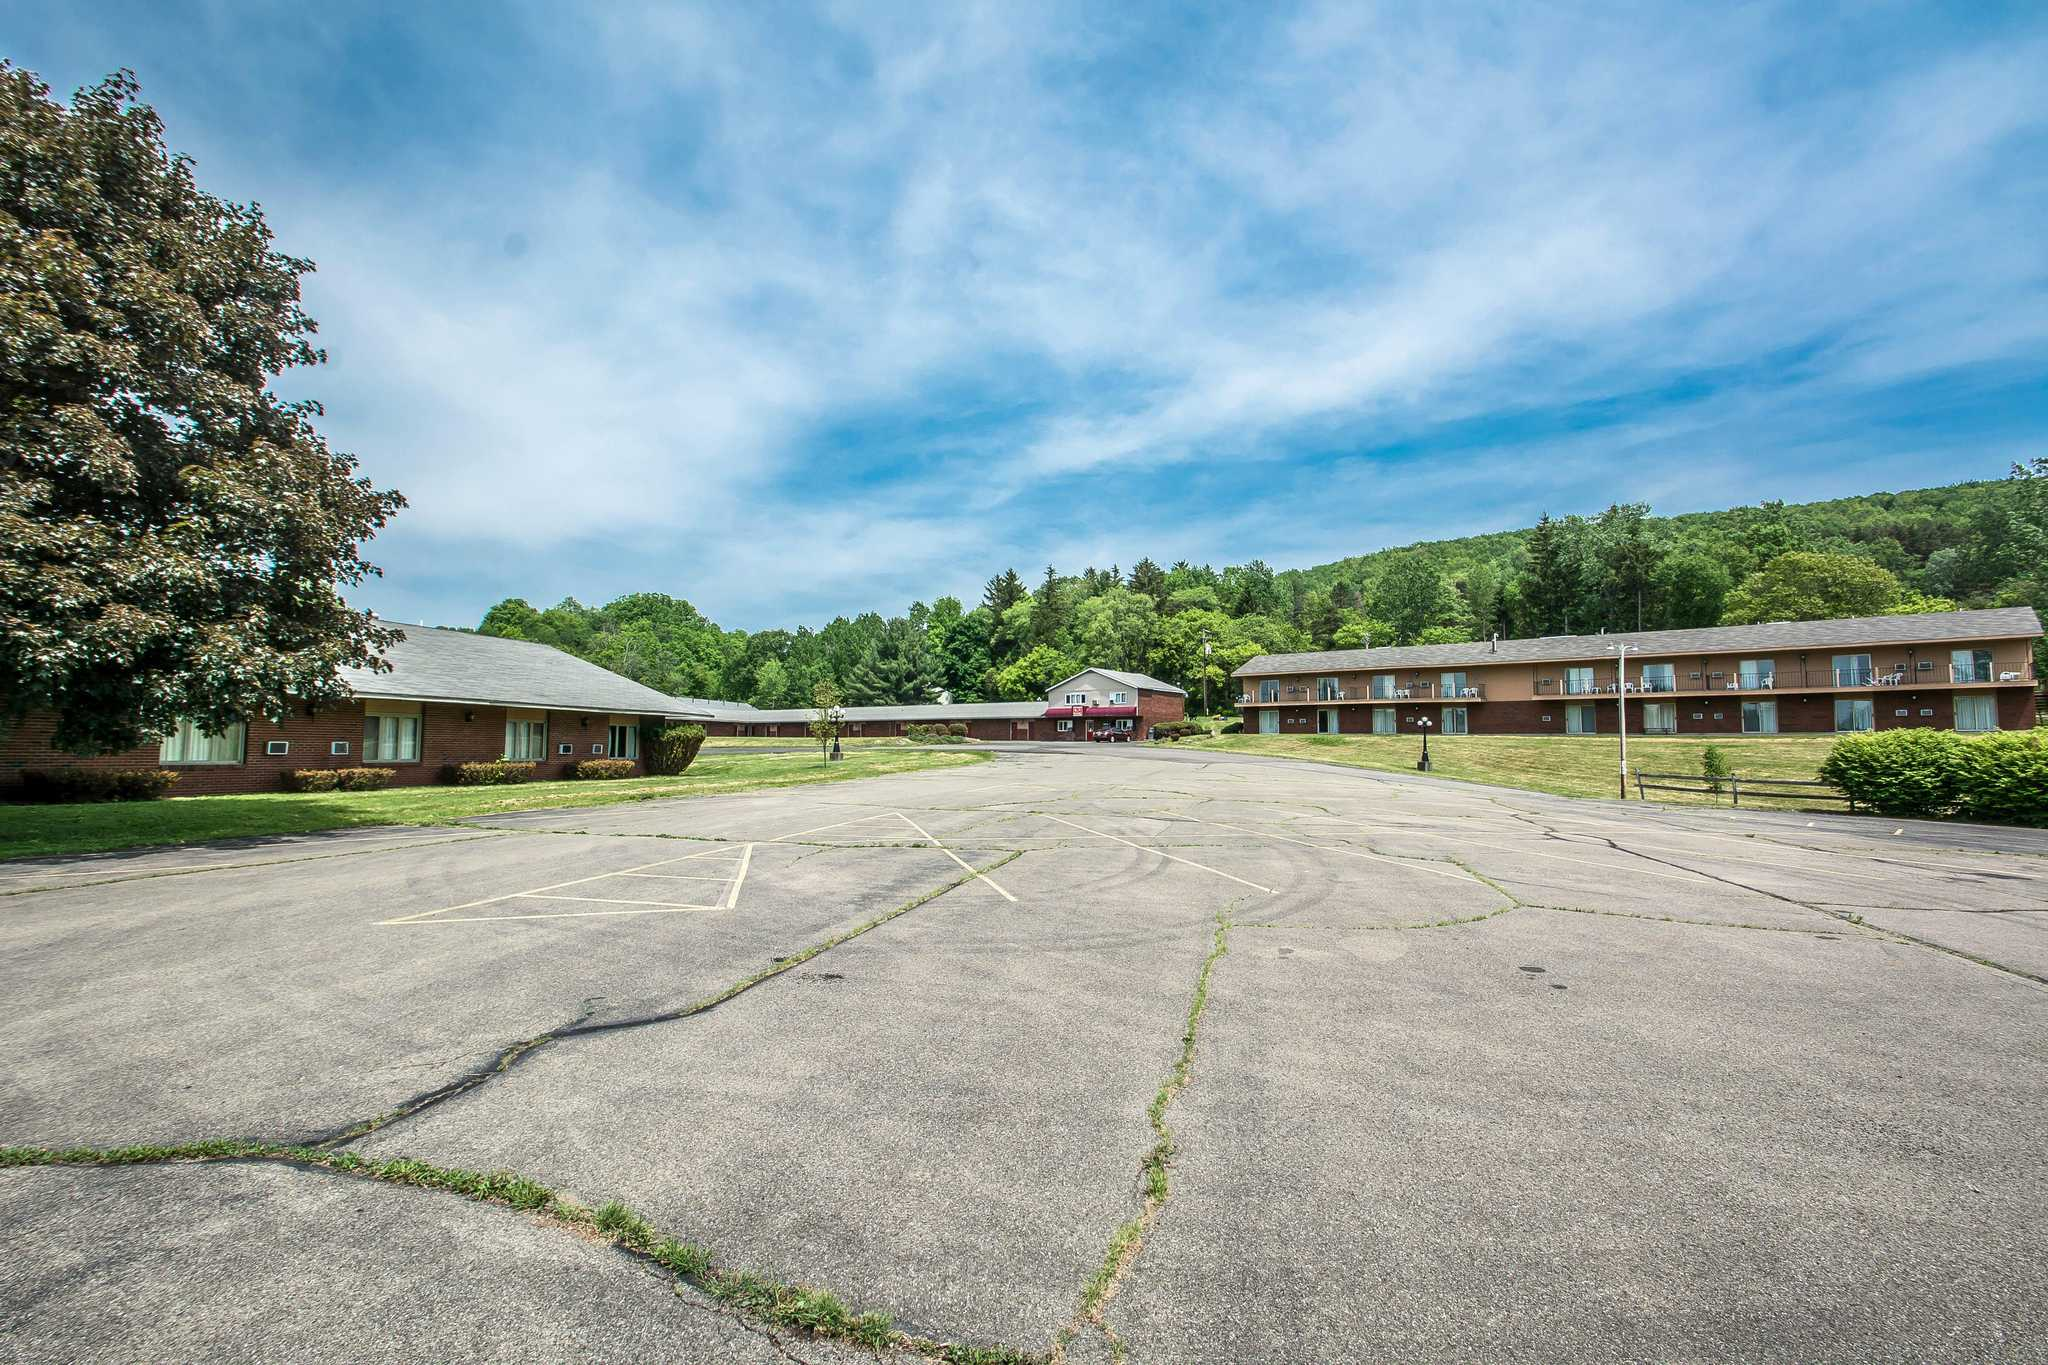 Econo Lodge image 3